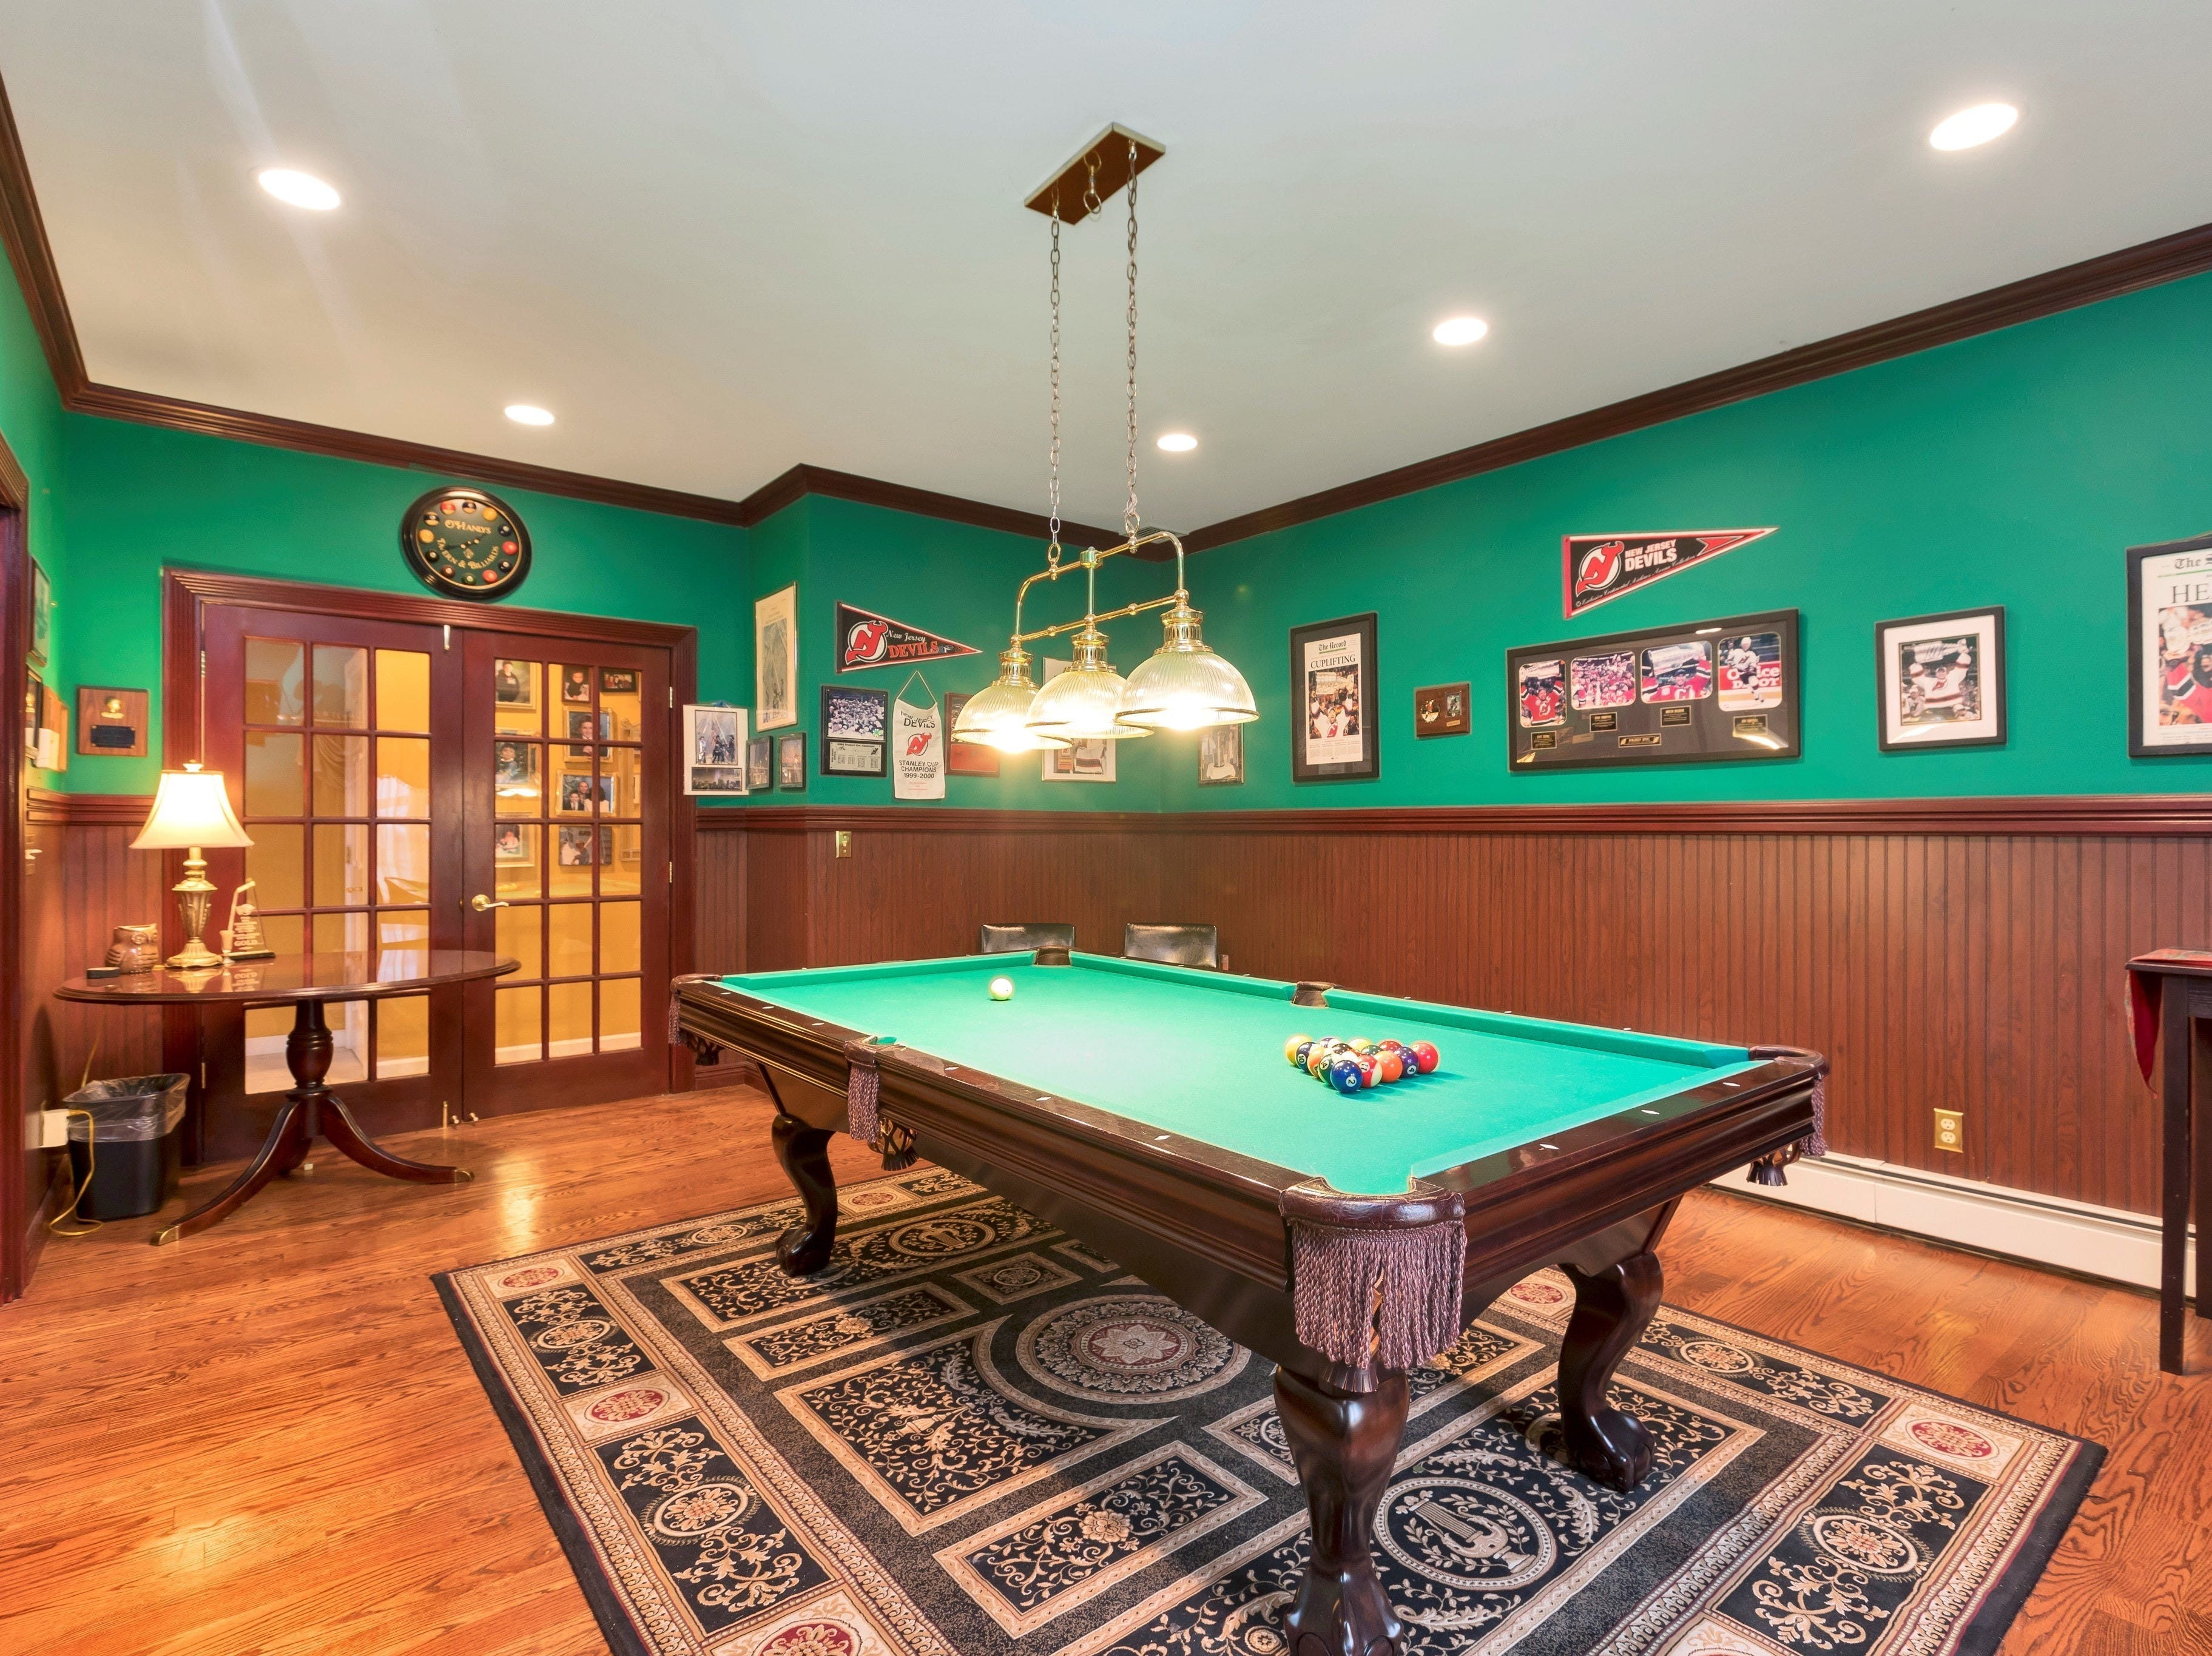 The billiard room is on the first floor rather than the basement, making it more accessible; the wainscoting and chair rail add warmth to the large room.